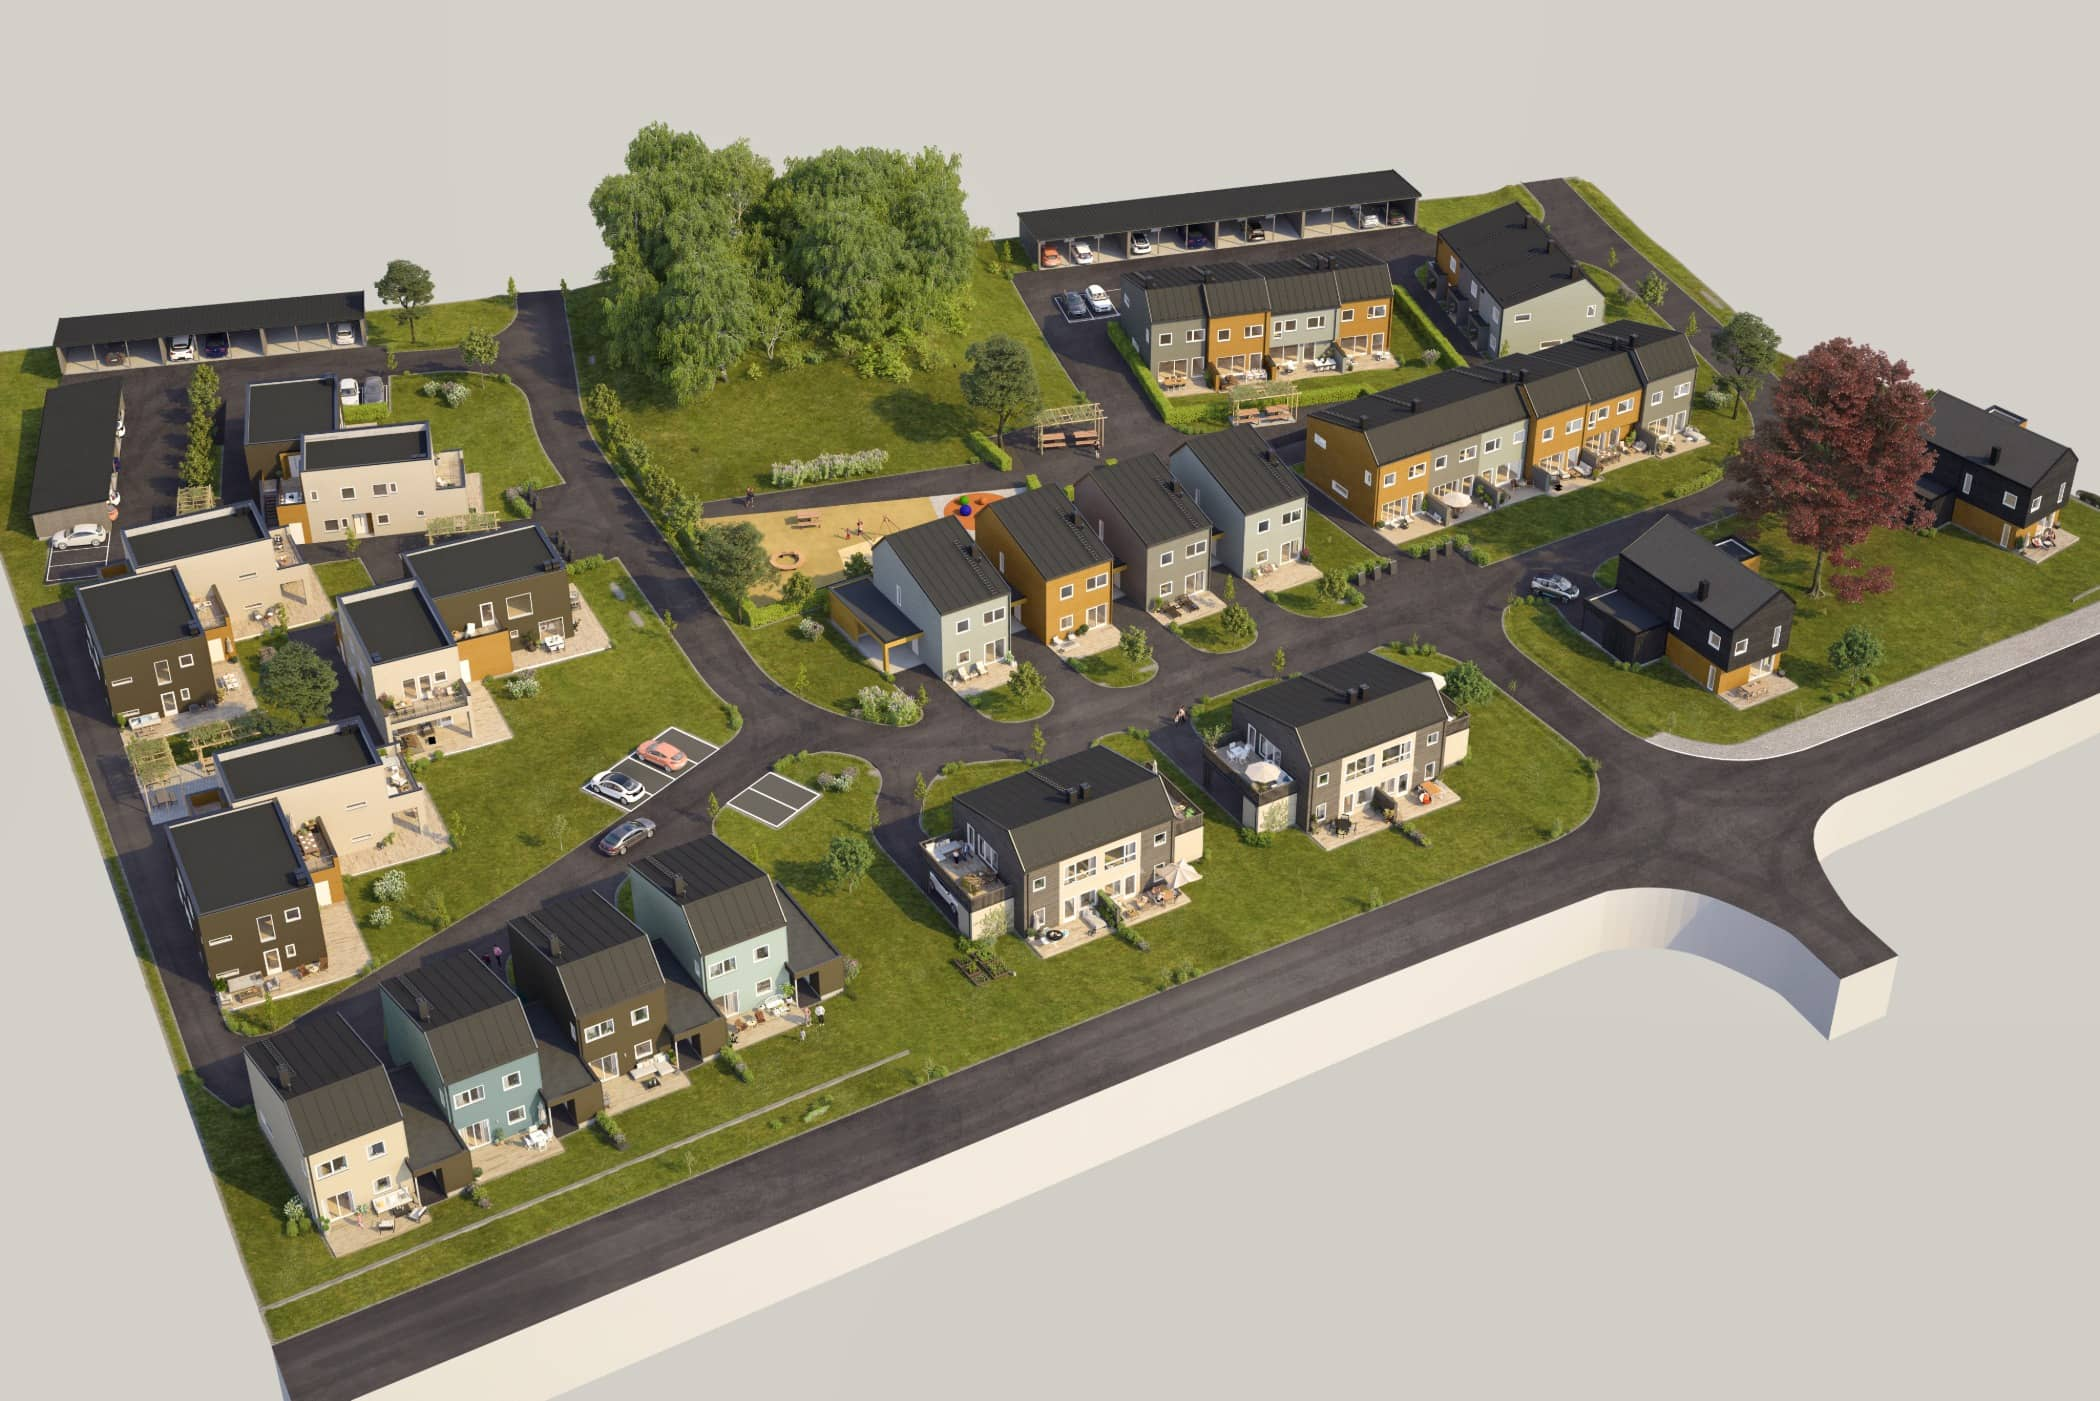 Land lot, Urban design, Residential area, Plan, Suburb, Home, Property